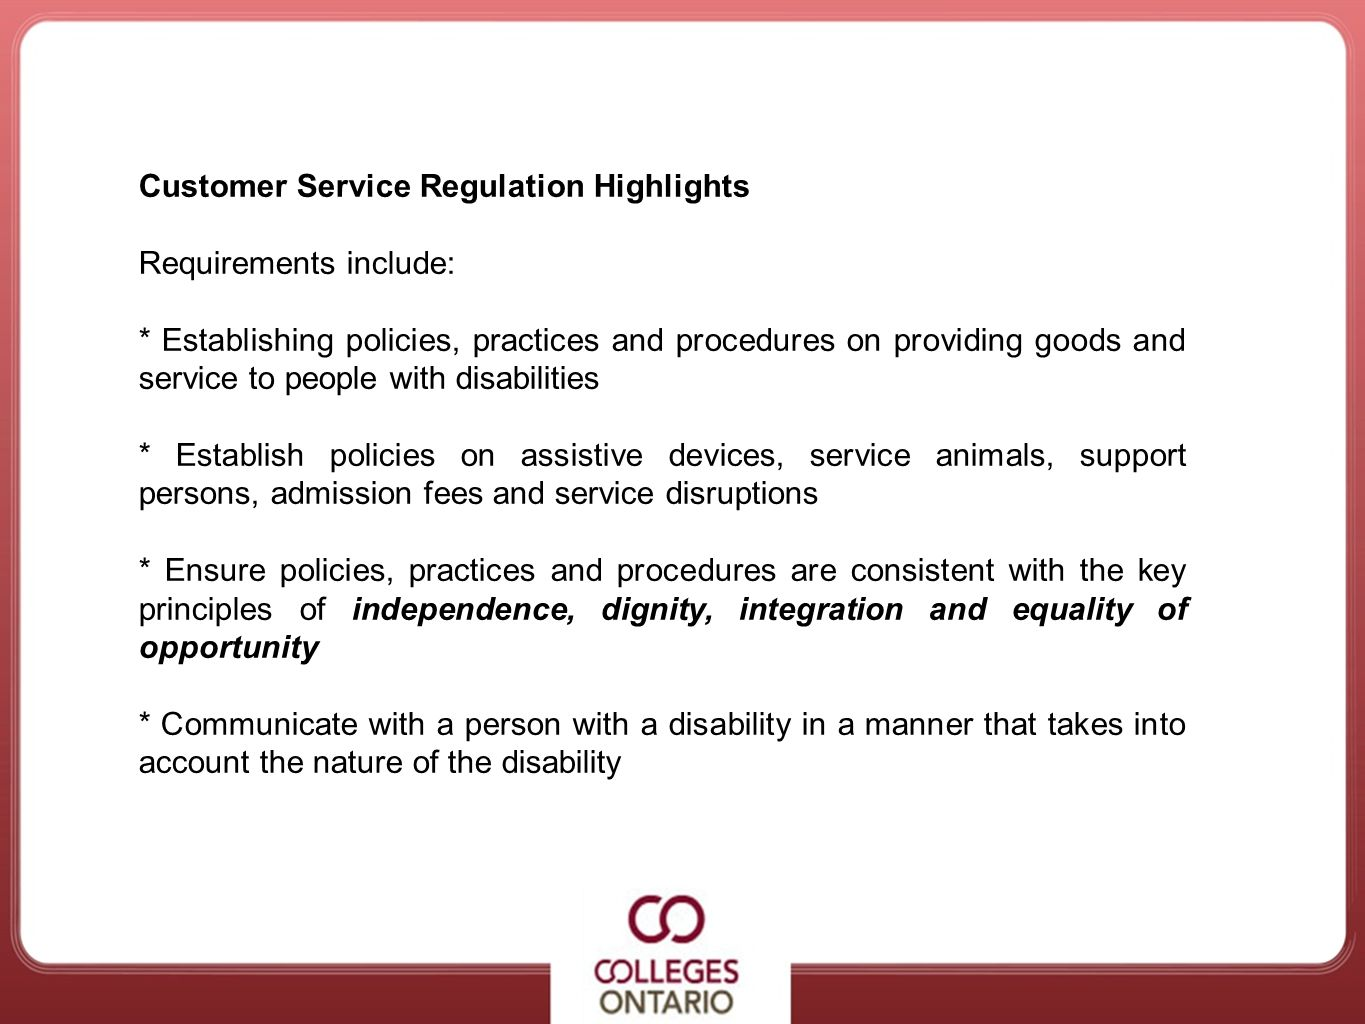 Customer Service Regulation Highlights